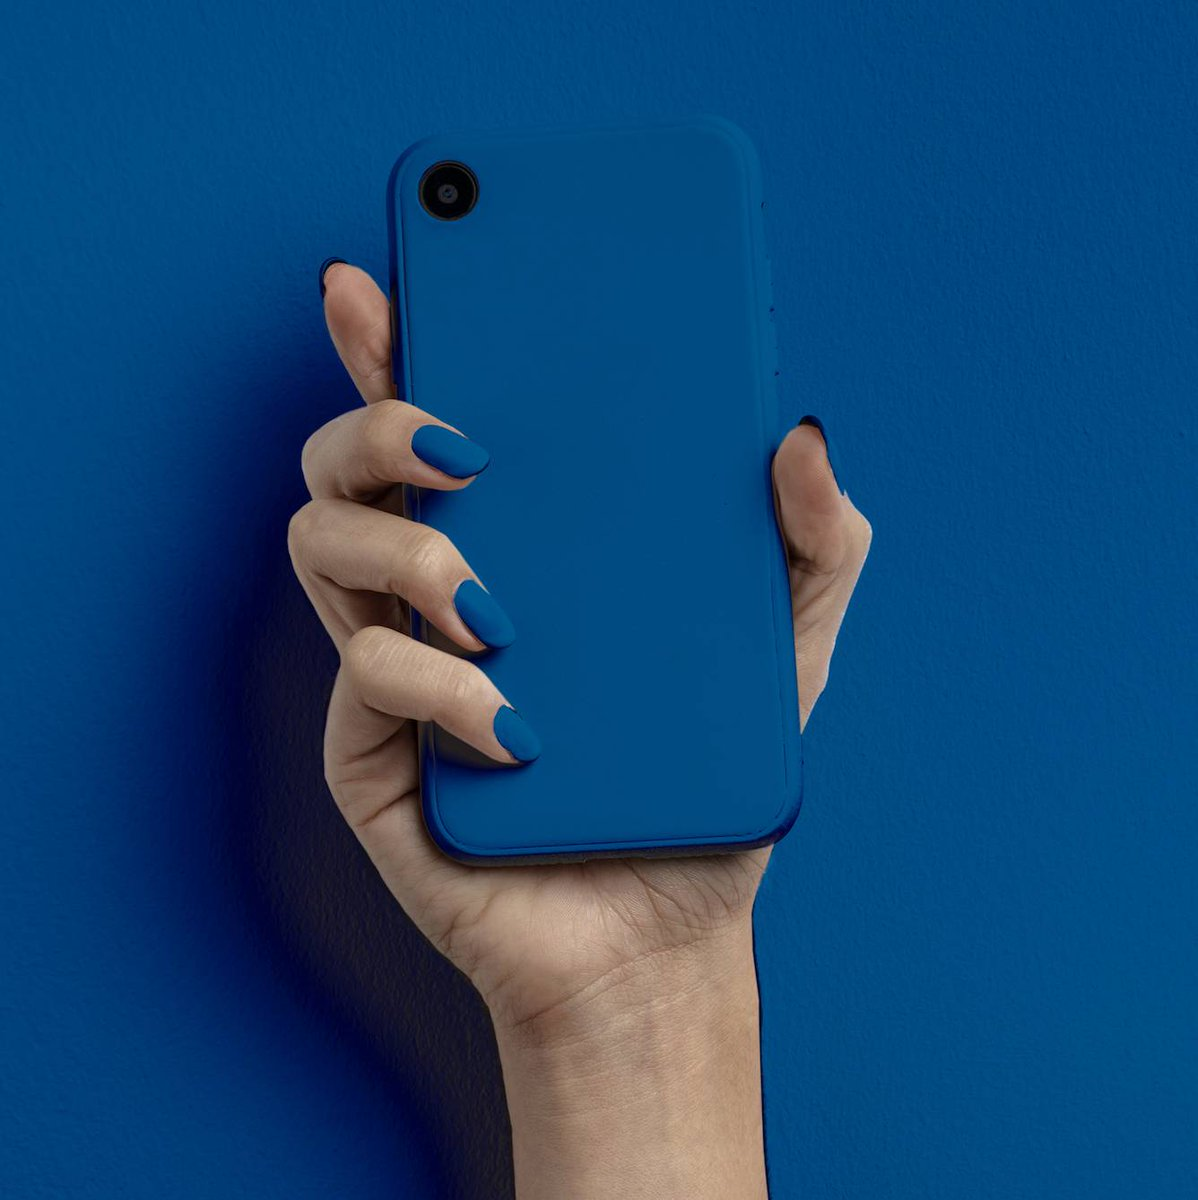 2020's fast approaching! The color of the year would be PANTONE 19-4052 TCX Classic Blue. Like this post if you're a blue lover too! 💙  #DOGlobal https://t.co/to1OHnE9V8